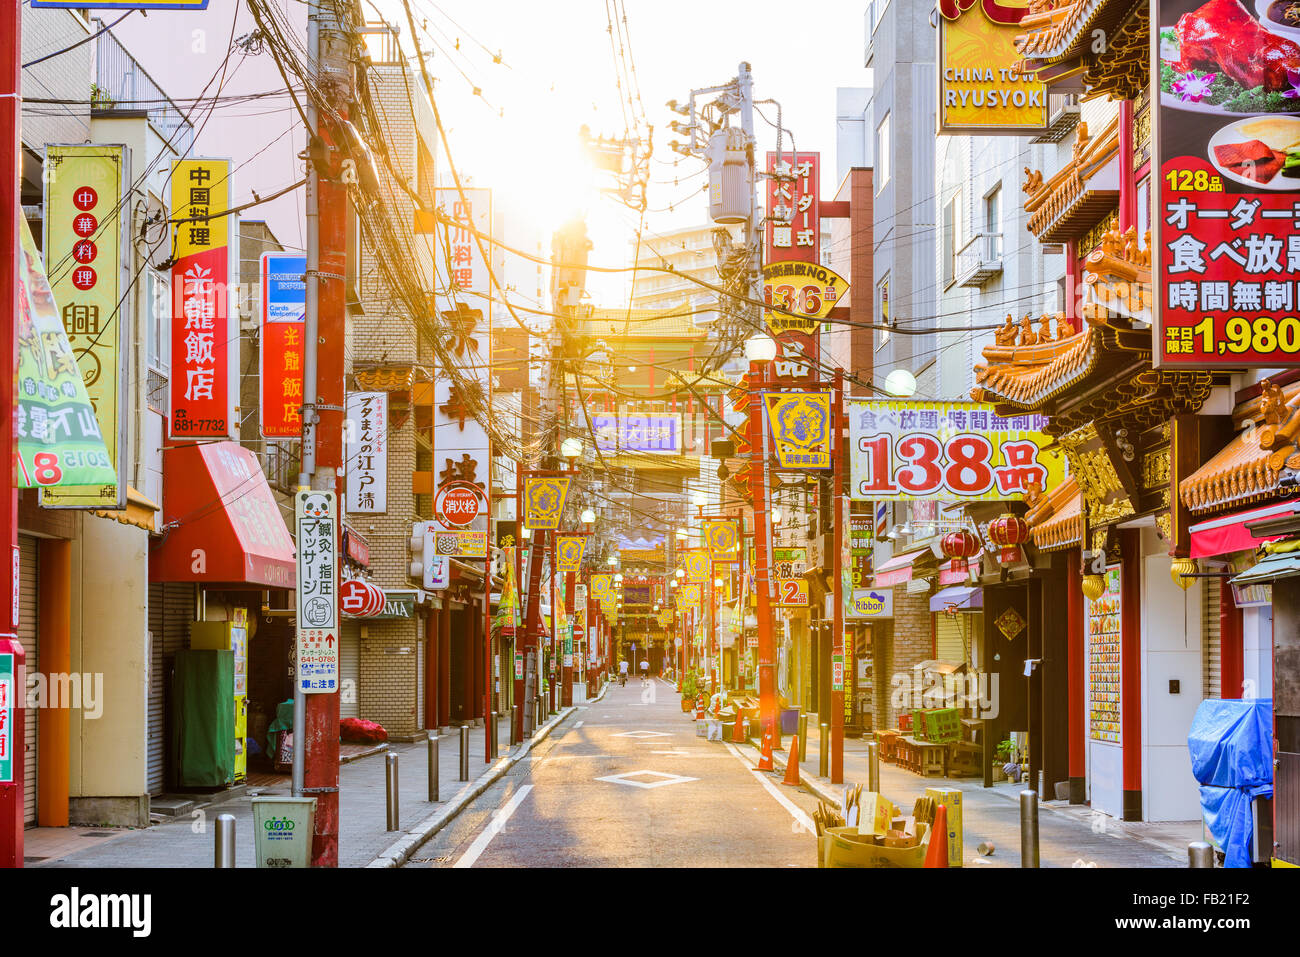 YOKOHAMA, JAPAN - AUGUST 11, 2015: Yokohama's Chinatown district. It is the largest Chinatown in Japan. - Stock Image